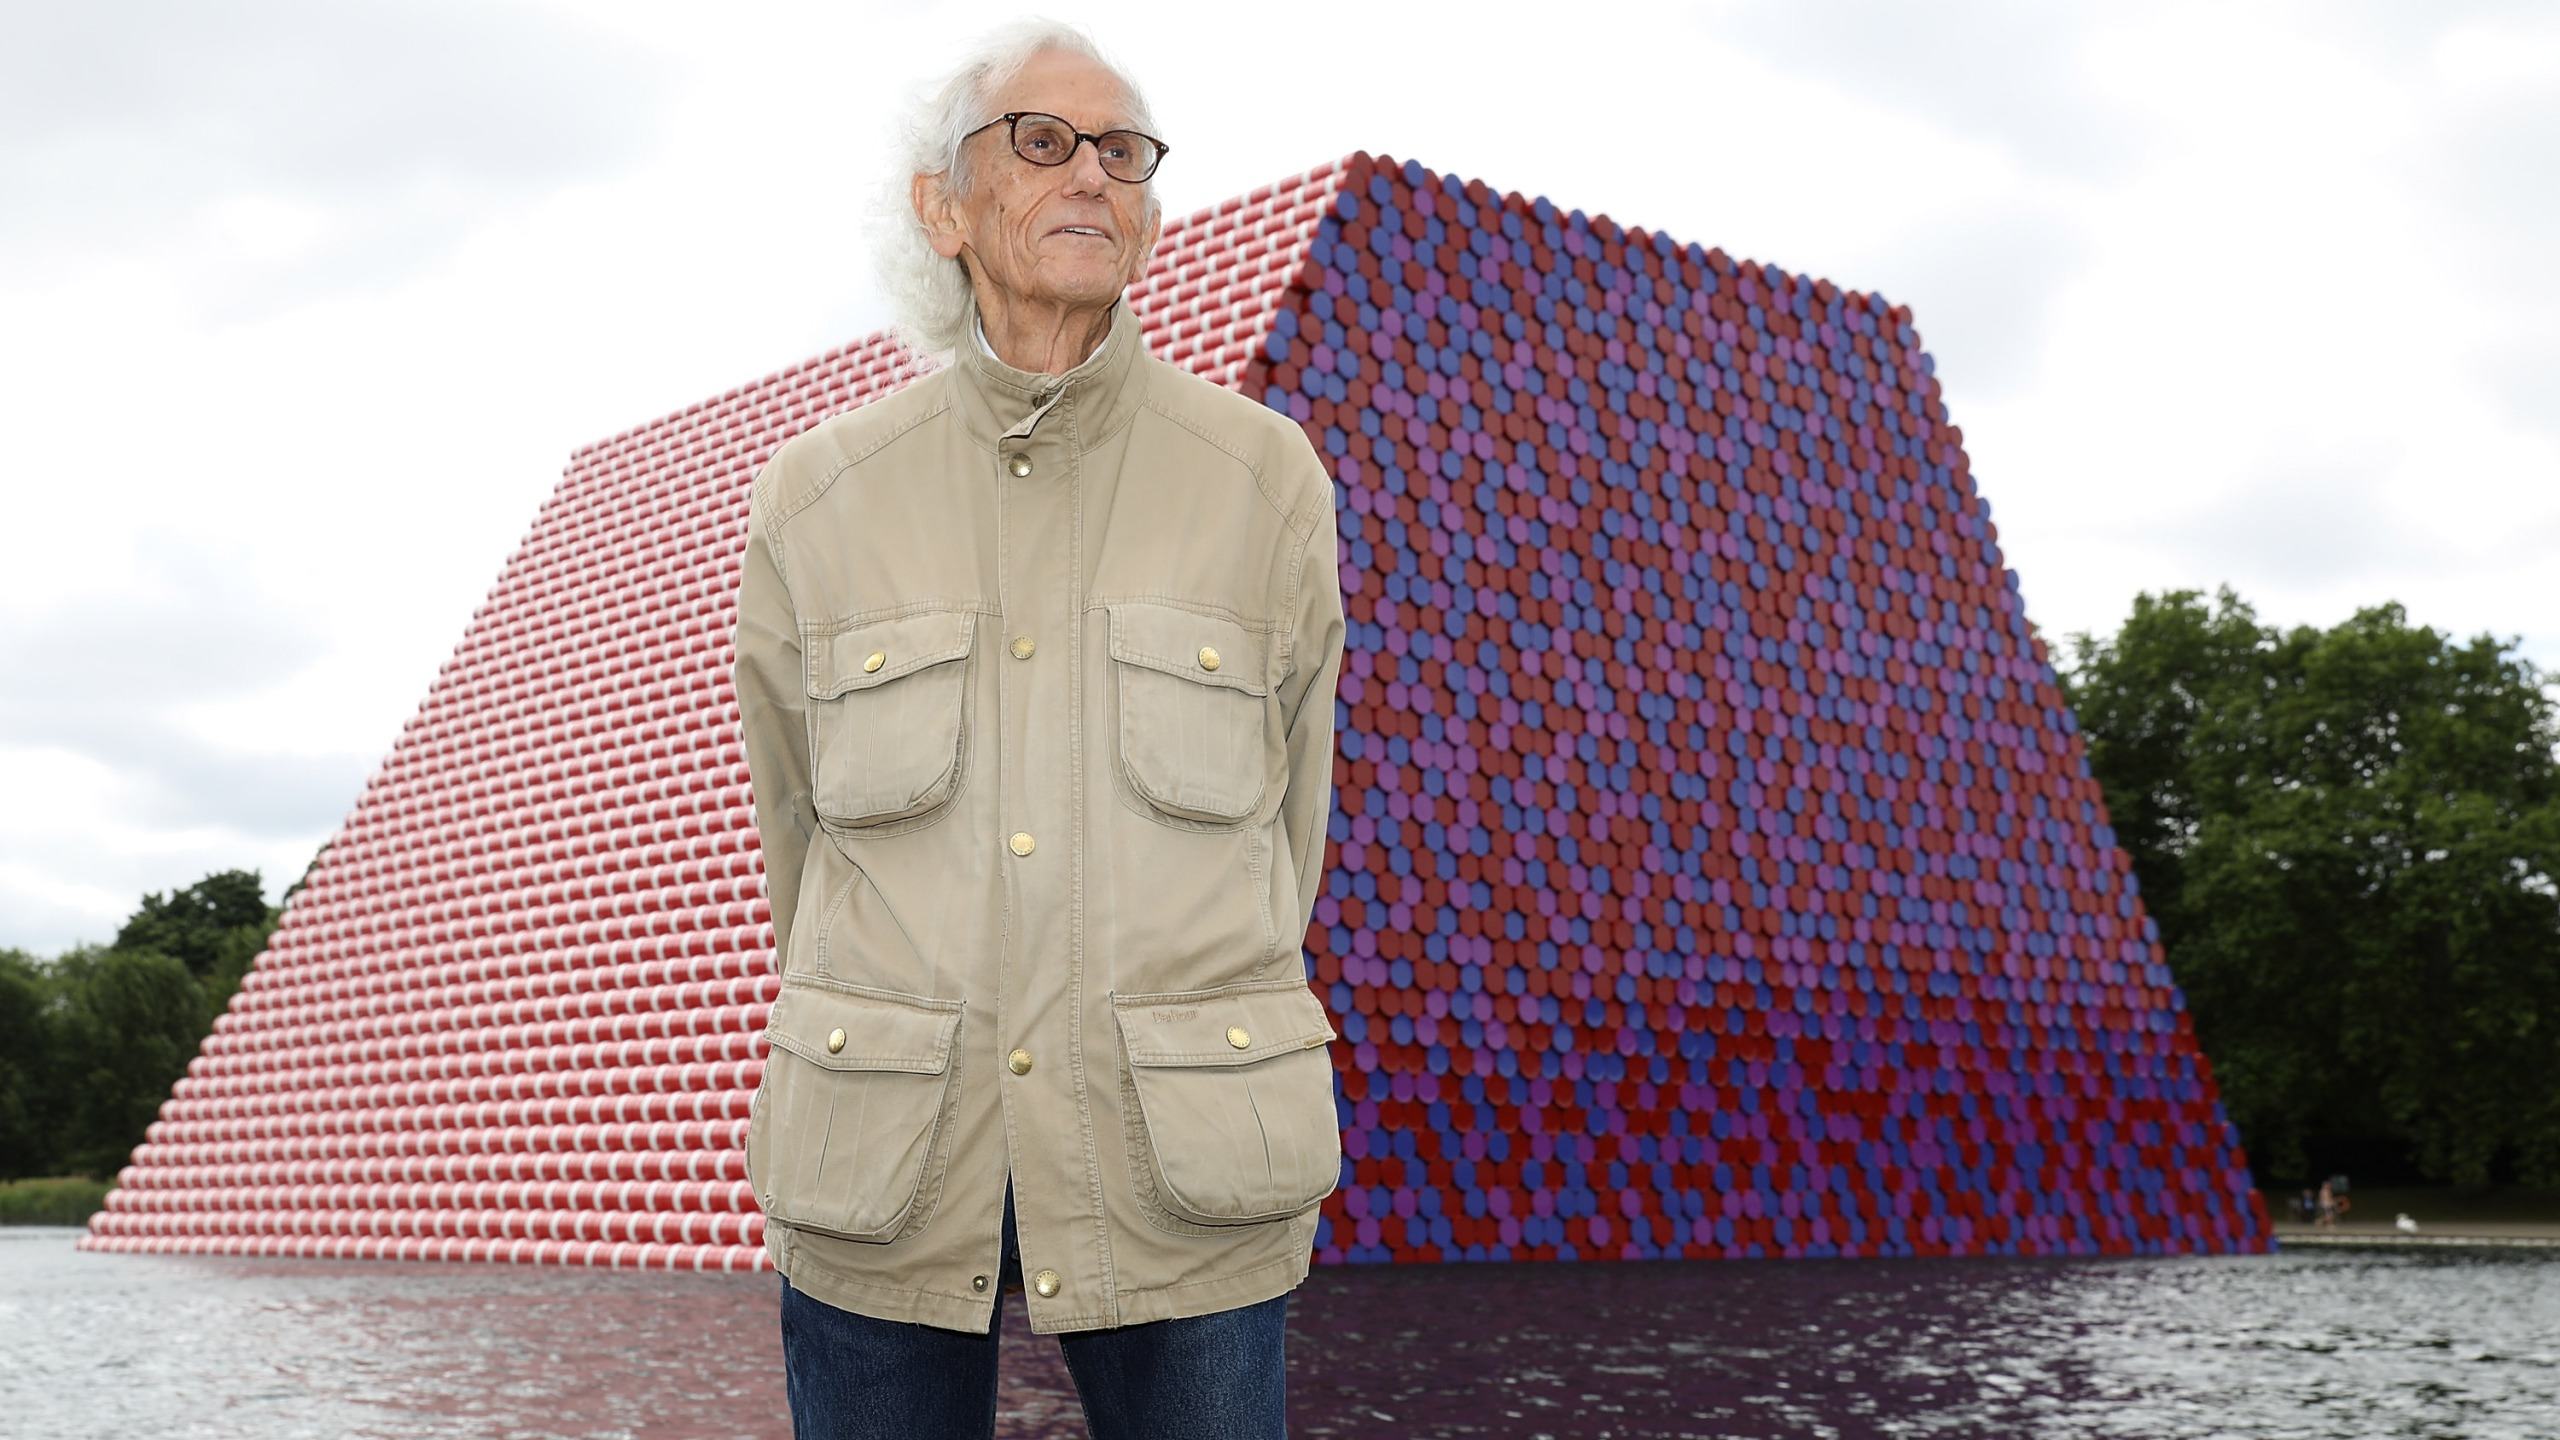 Artist Christo unveils his first UK outdoor work, a 20 meter high installation on Serpentine Lake, on June 18, 2018, in London, England. (Tim P. Whitby / Getty Images for Serpentine Galleries)